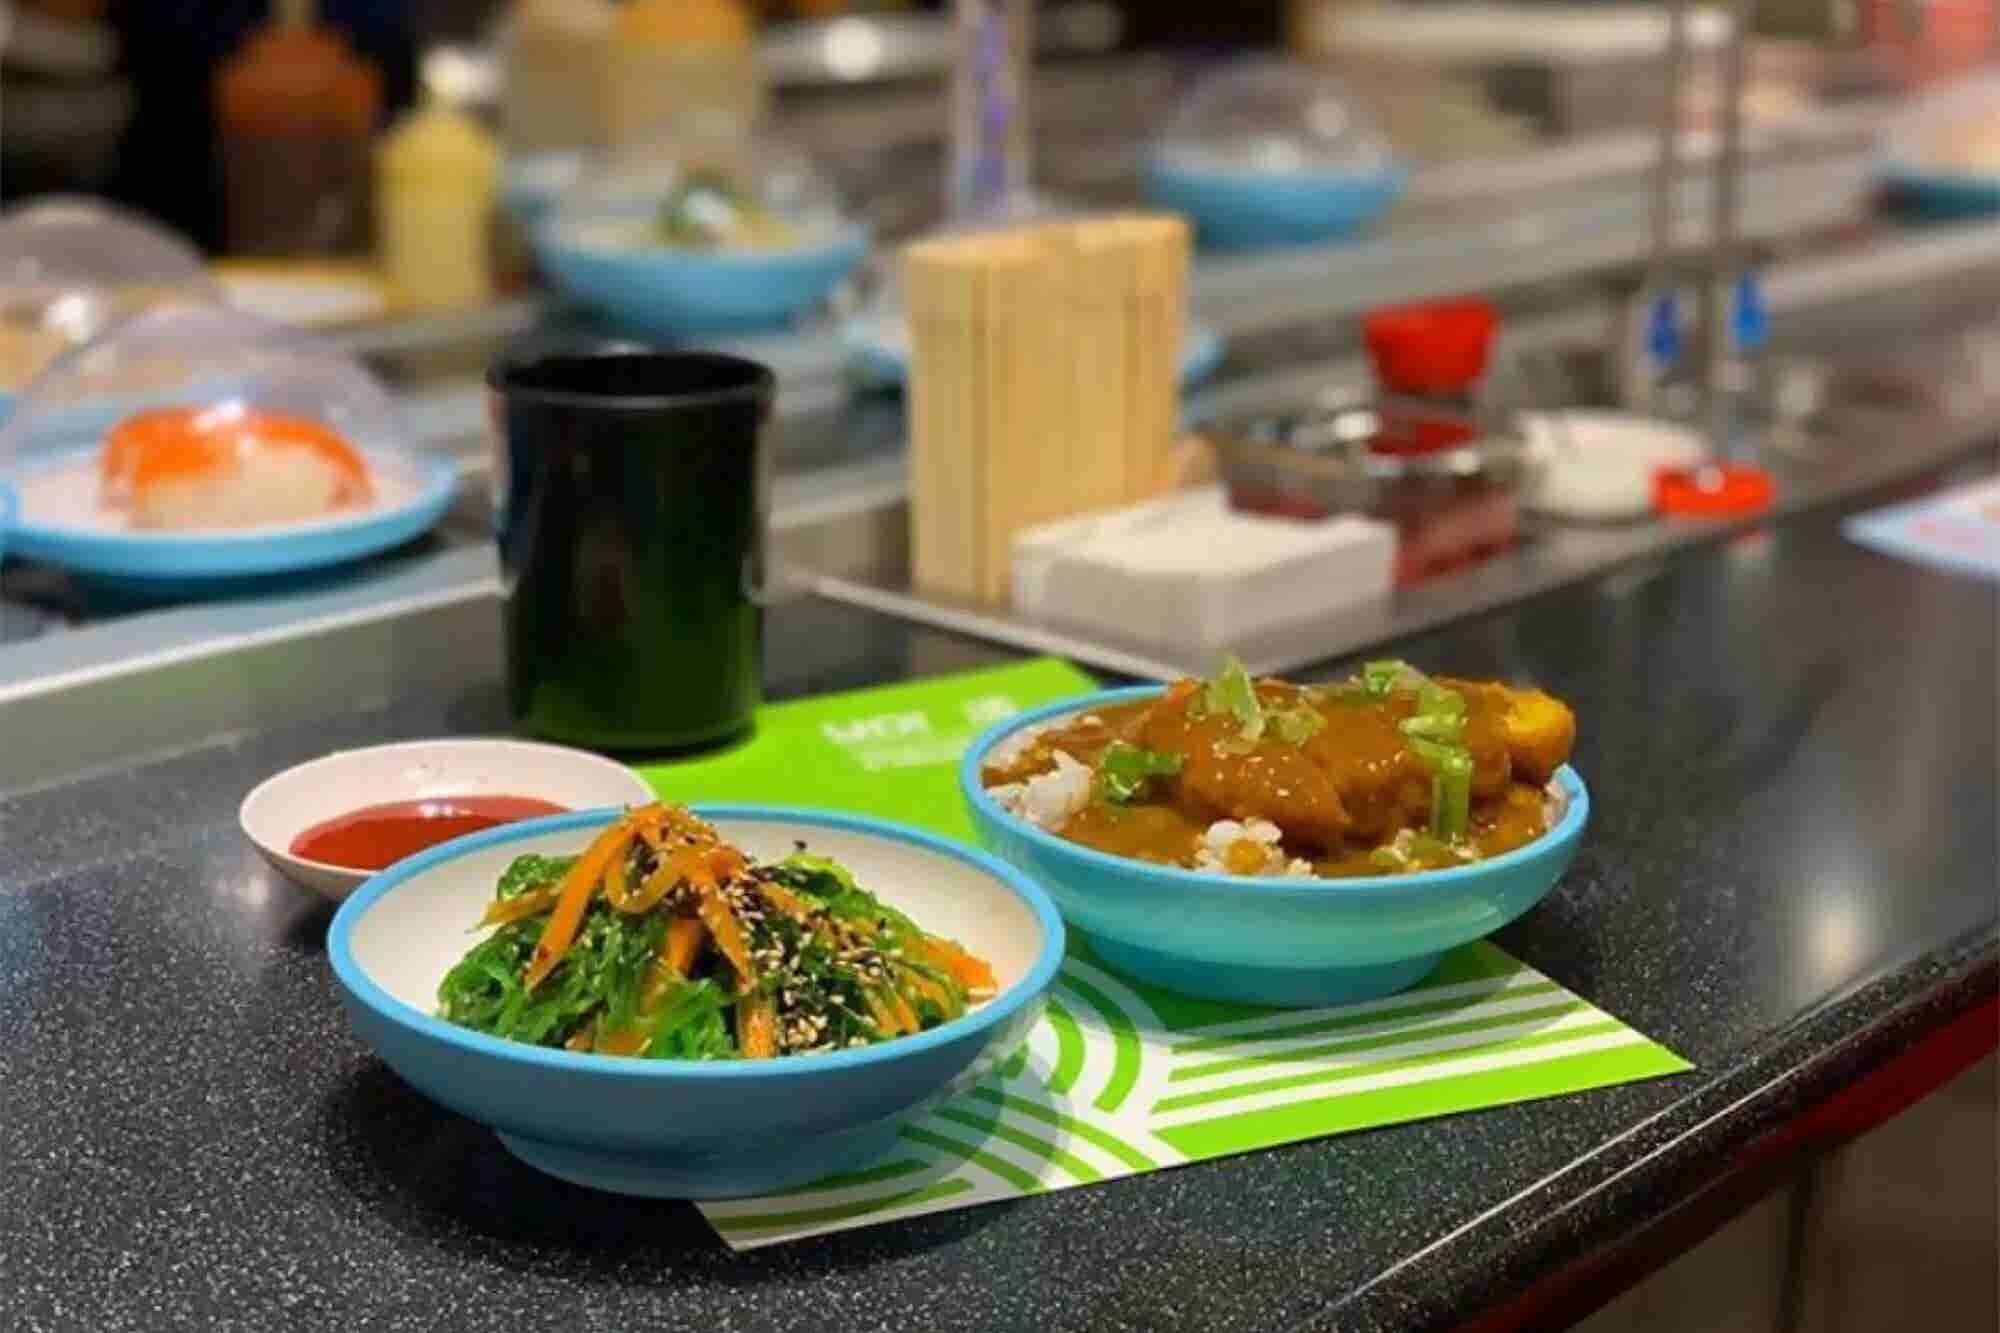 How This Conveyor Belt Sushi Chain Markets to Customers